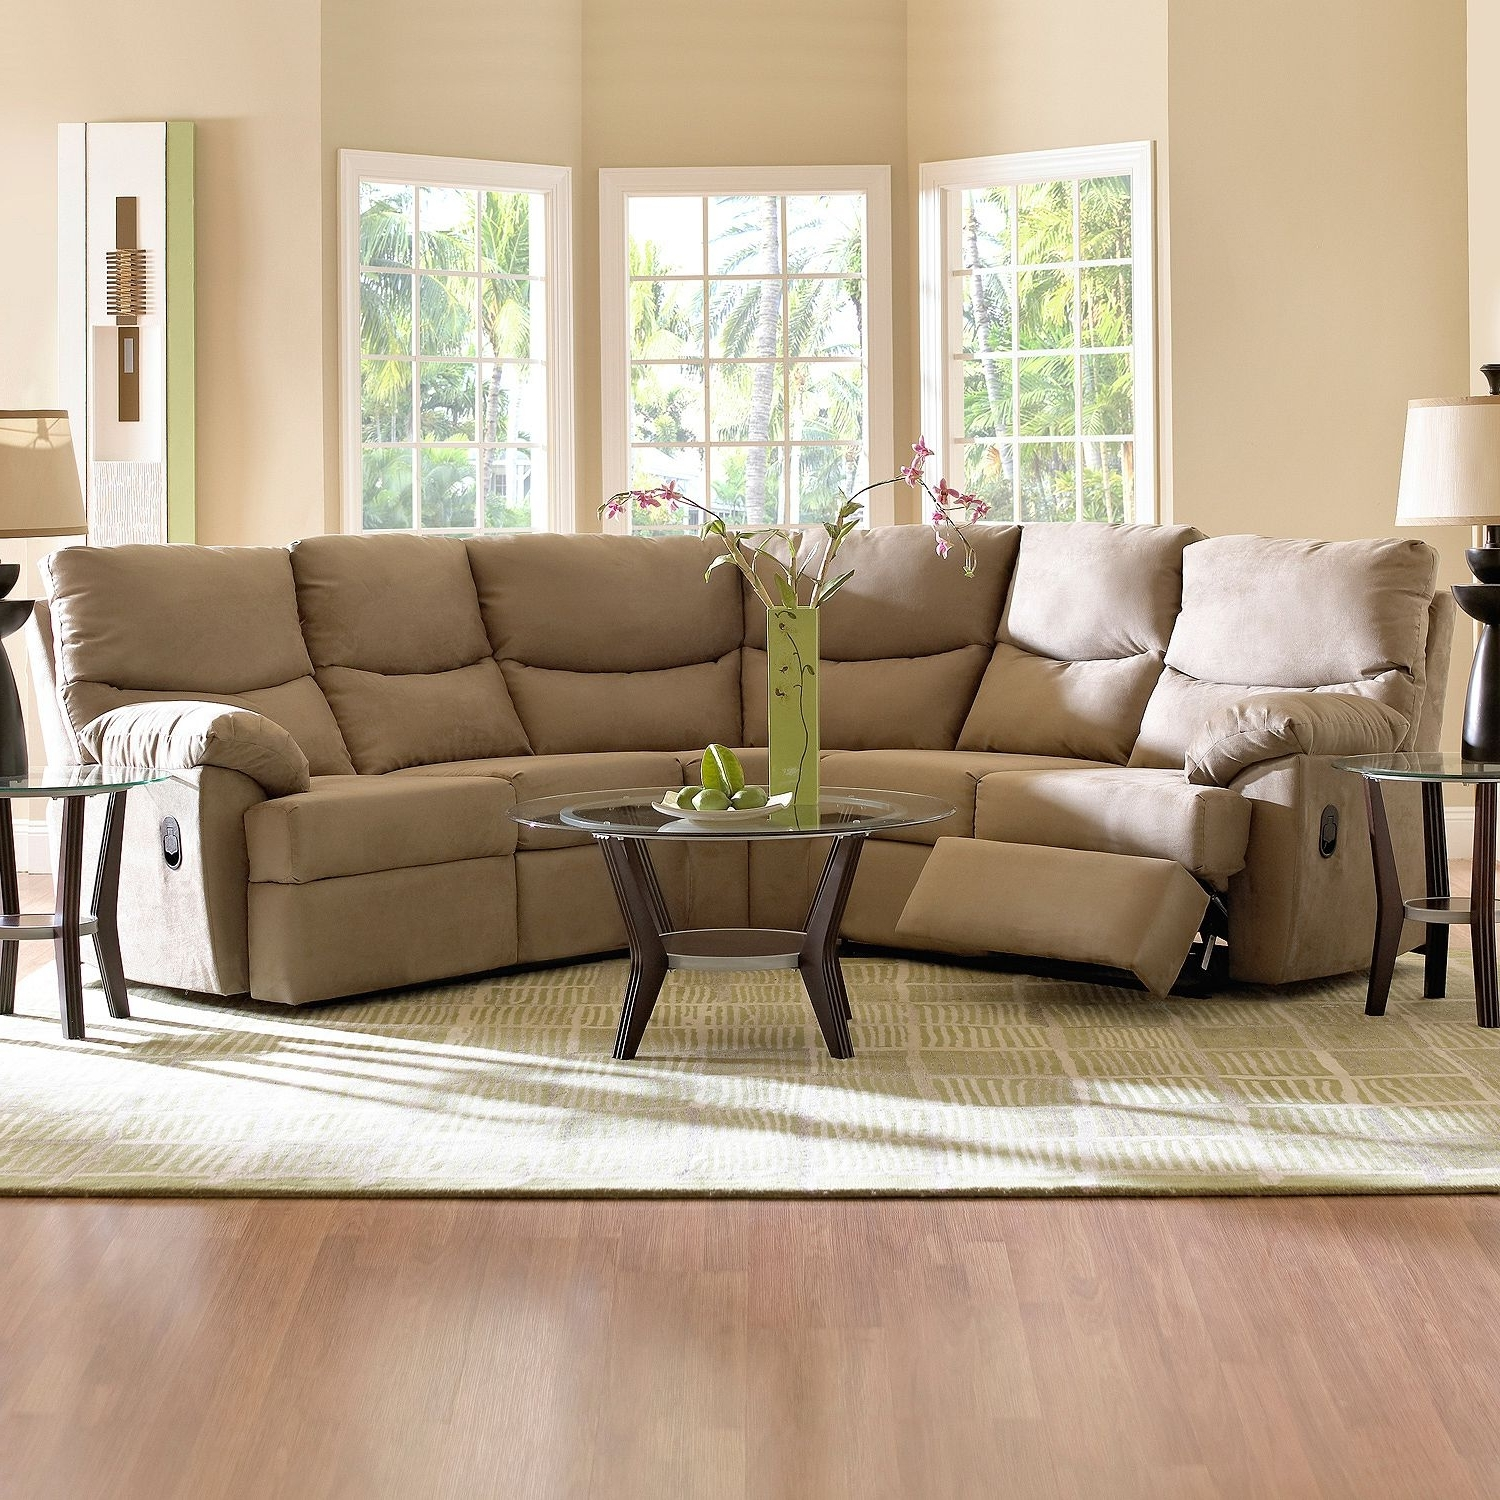 Home With Regard To Most Recent Sectional Sofas At Sam's Club (View 2 of 20)